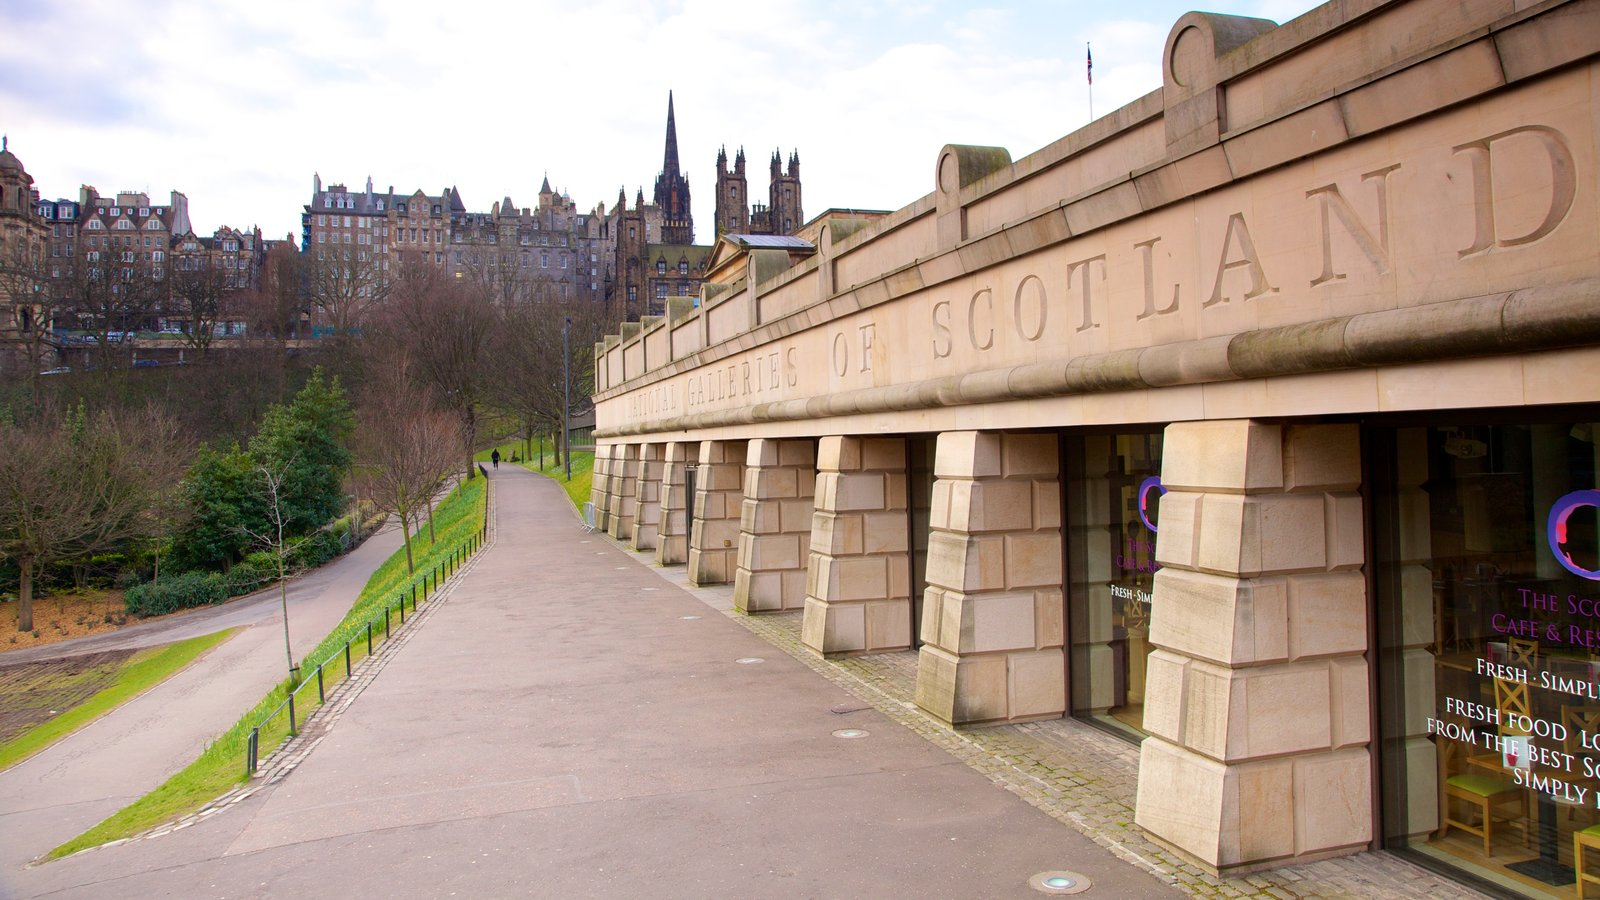 Scottish National Gallery featuring a city and signage